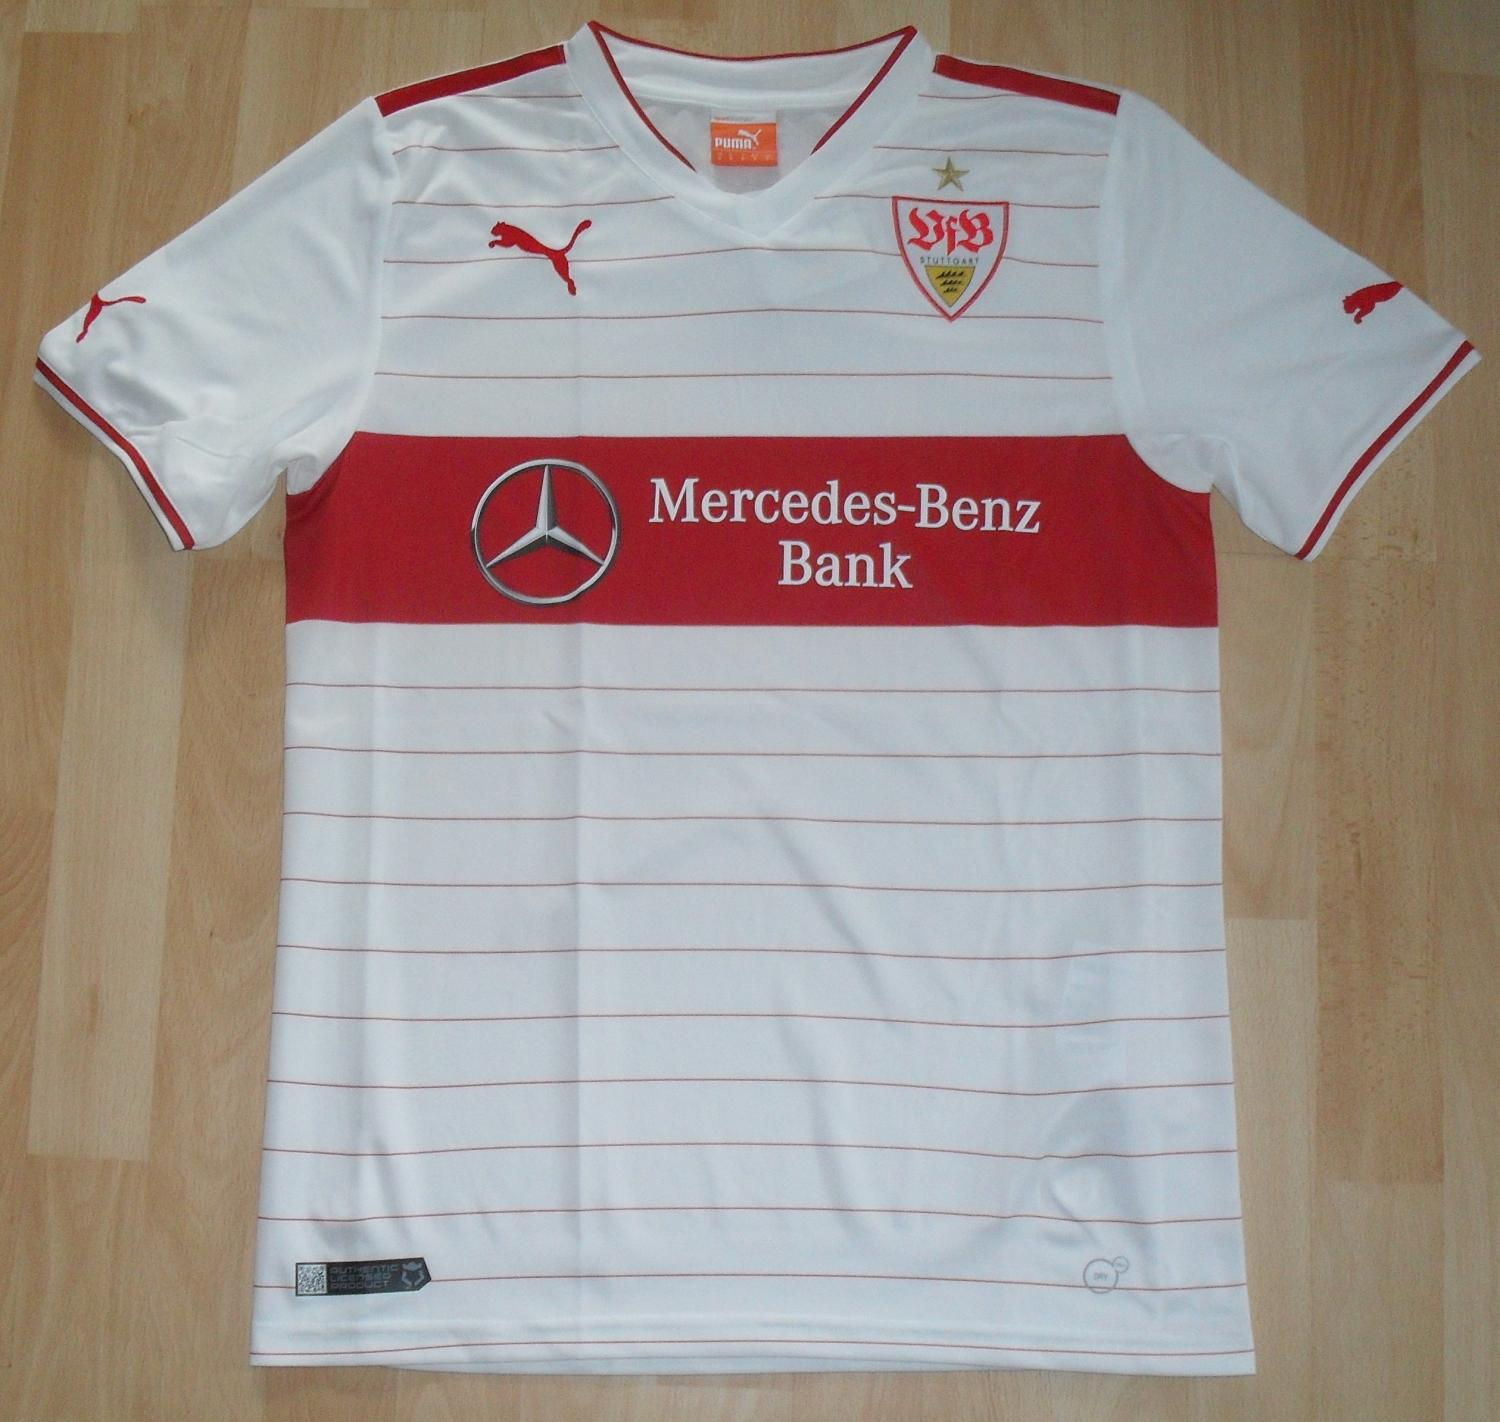 vfb stuttgart domicile maillot de foot 2013 2014 ajout 2015 08 12 08 37. Black Bedroom Furniture Sets. Home Design Ideas